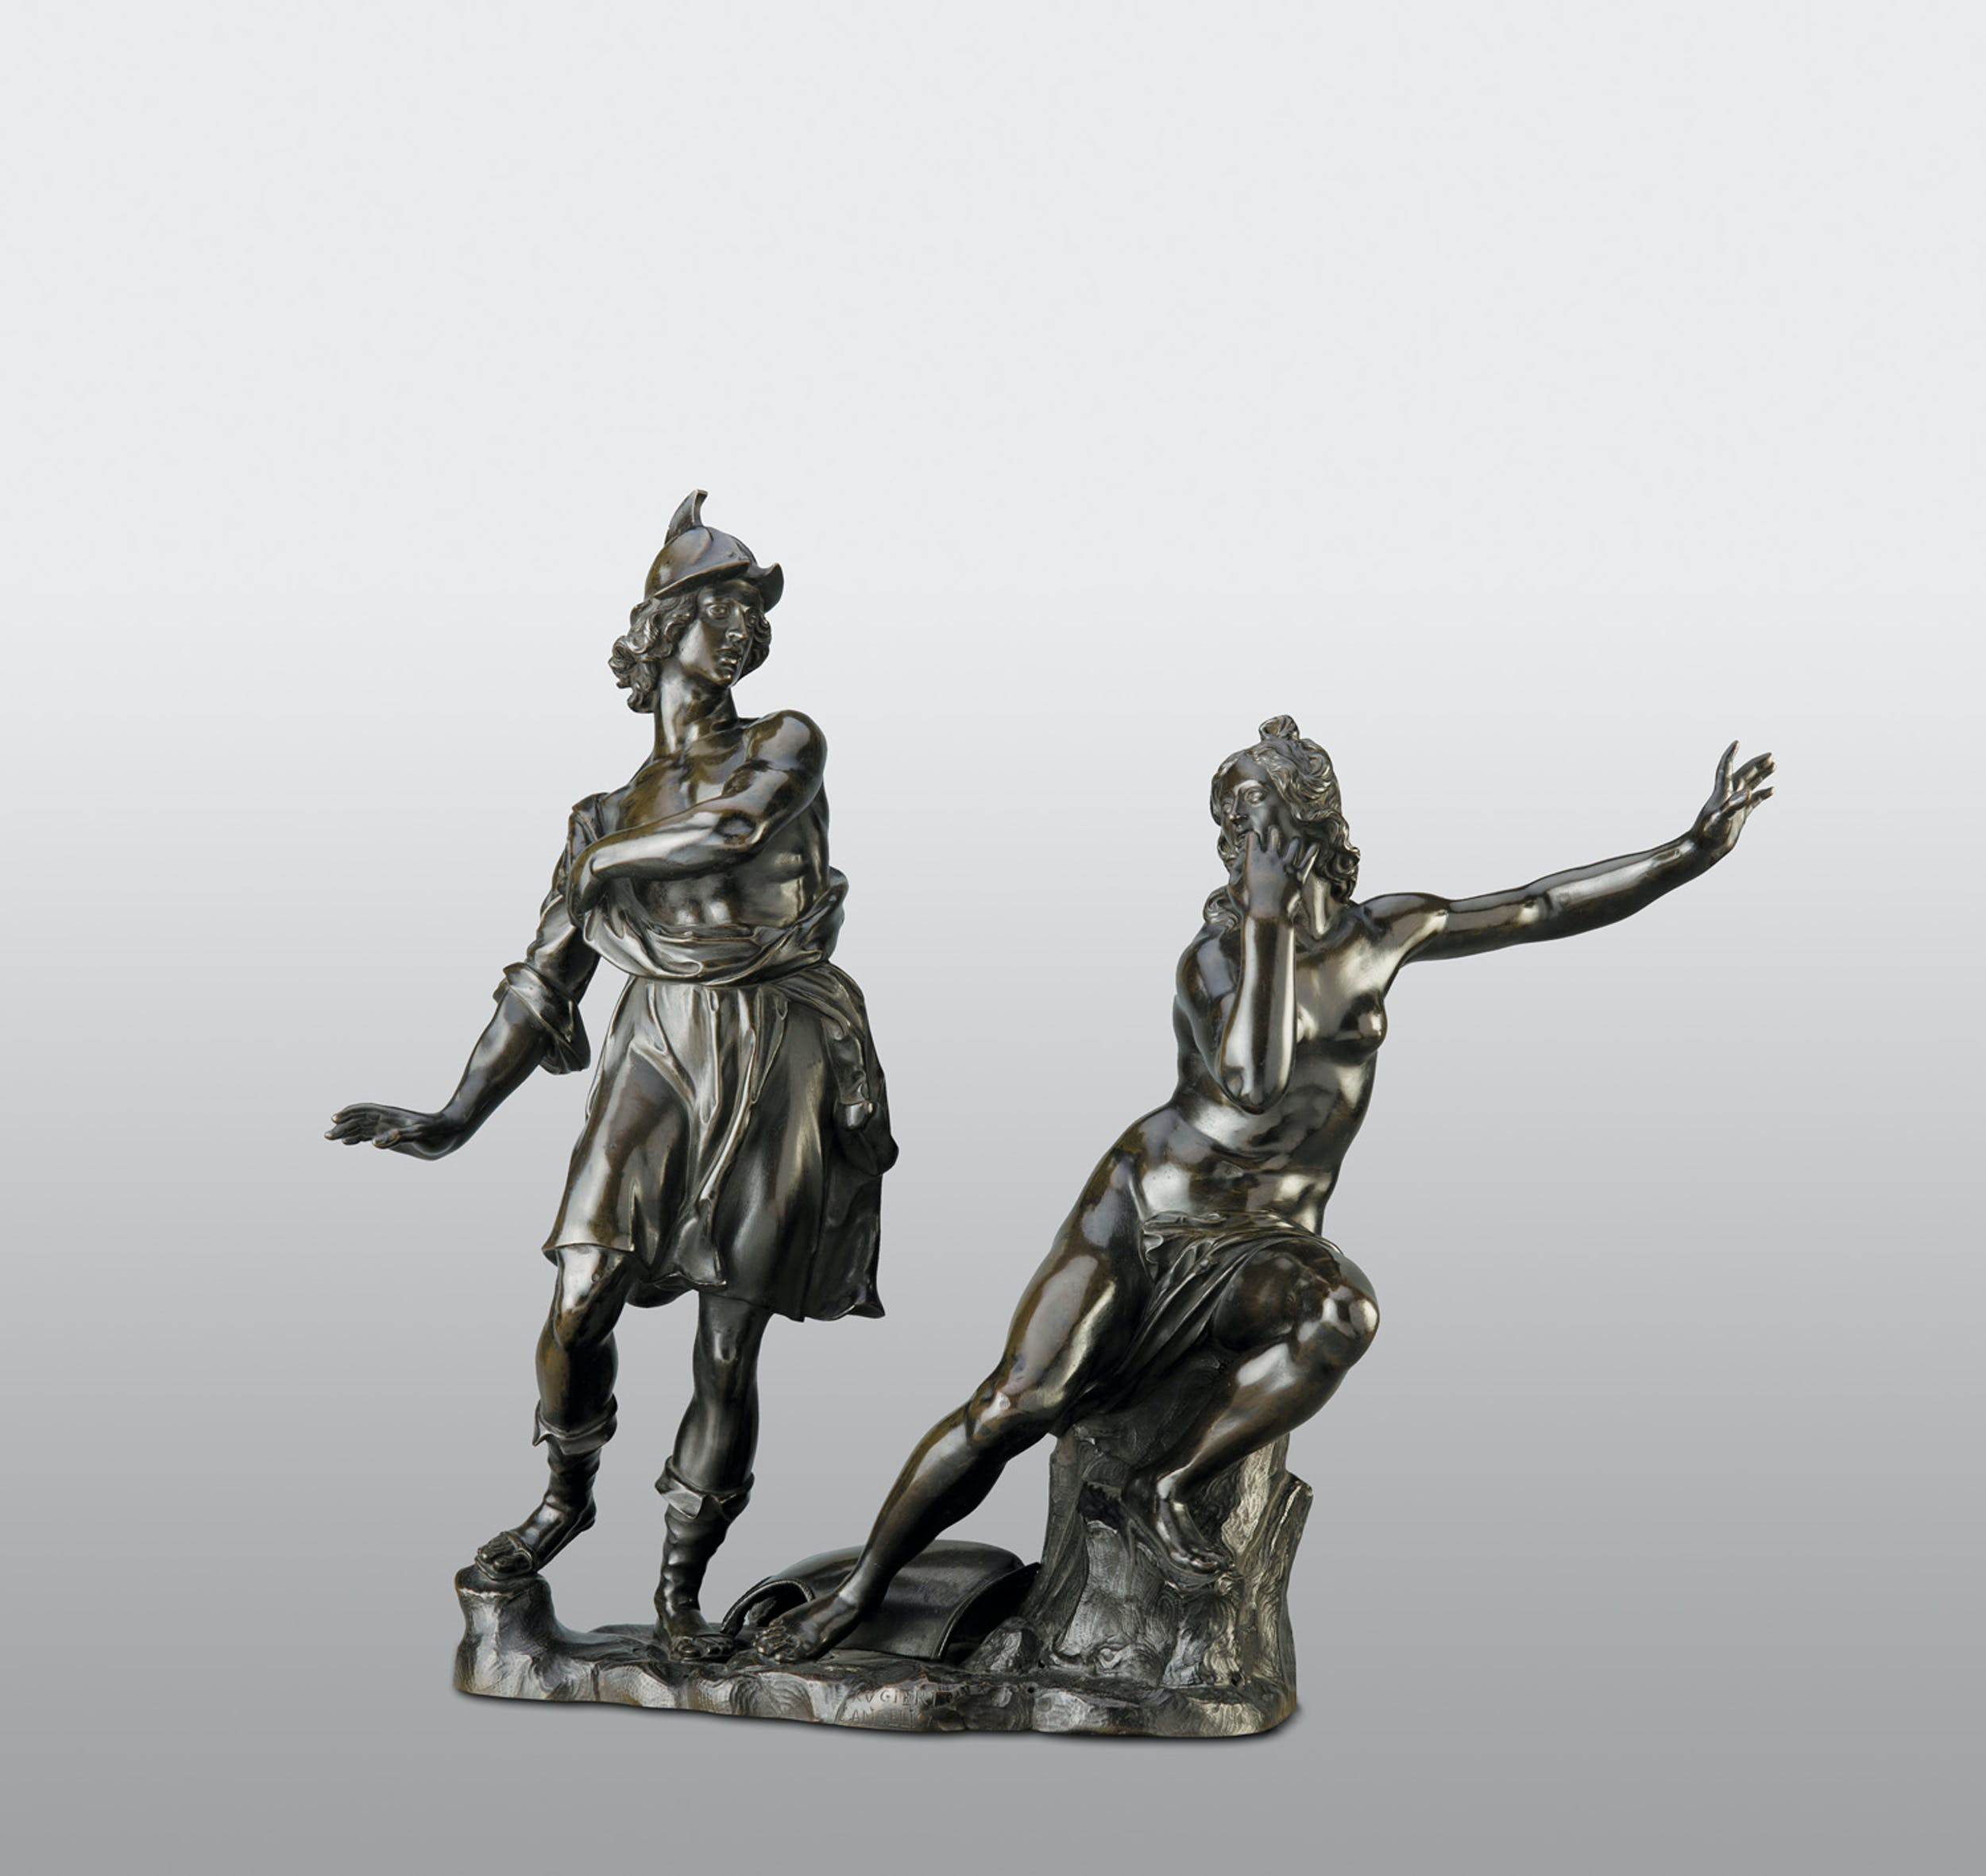 Ferdinando Tacca Angelica con l'anello magico si cela a Ruggiero 1650-1660 circa bronzo patinato Musée du Louvre, Parigi Fig. 3 Ferdinando Tacca Angelica with the magic ring hides from Ruggiero 1650-1660 circa patinated bronze Musée du Louvre, Parigi